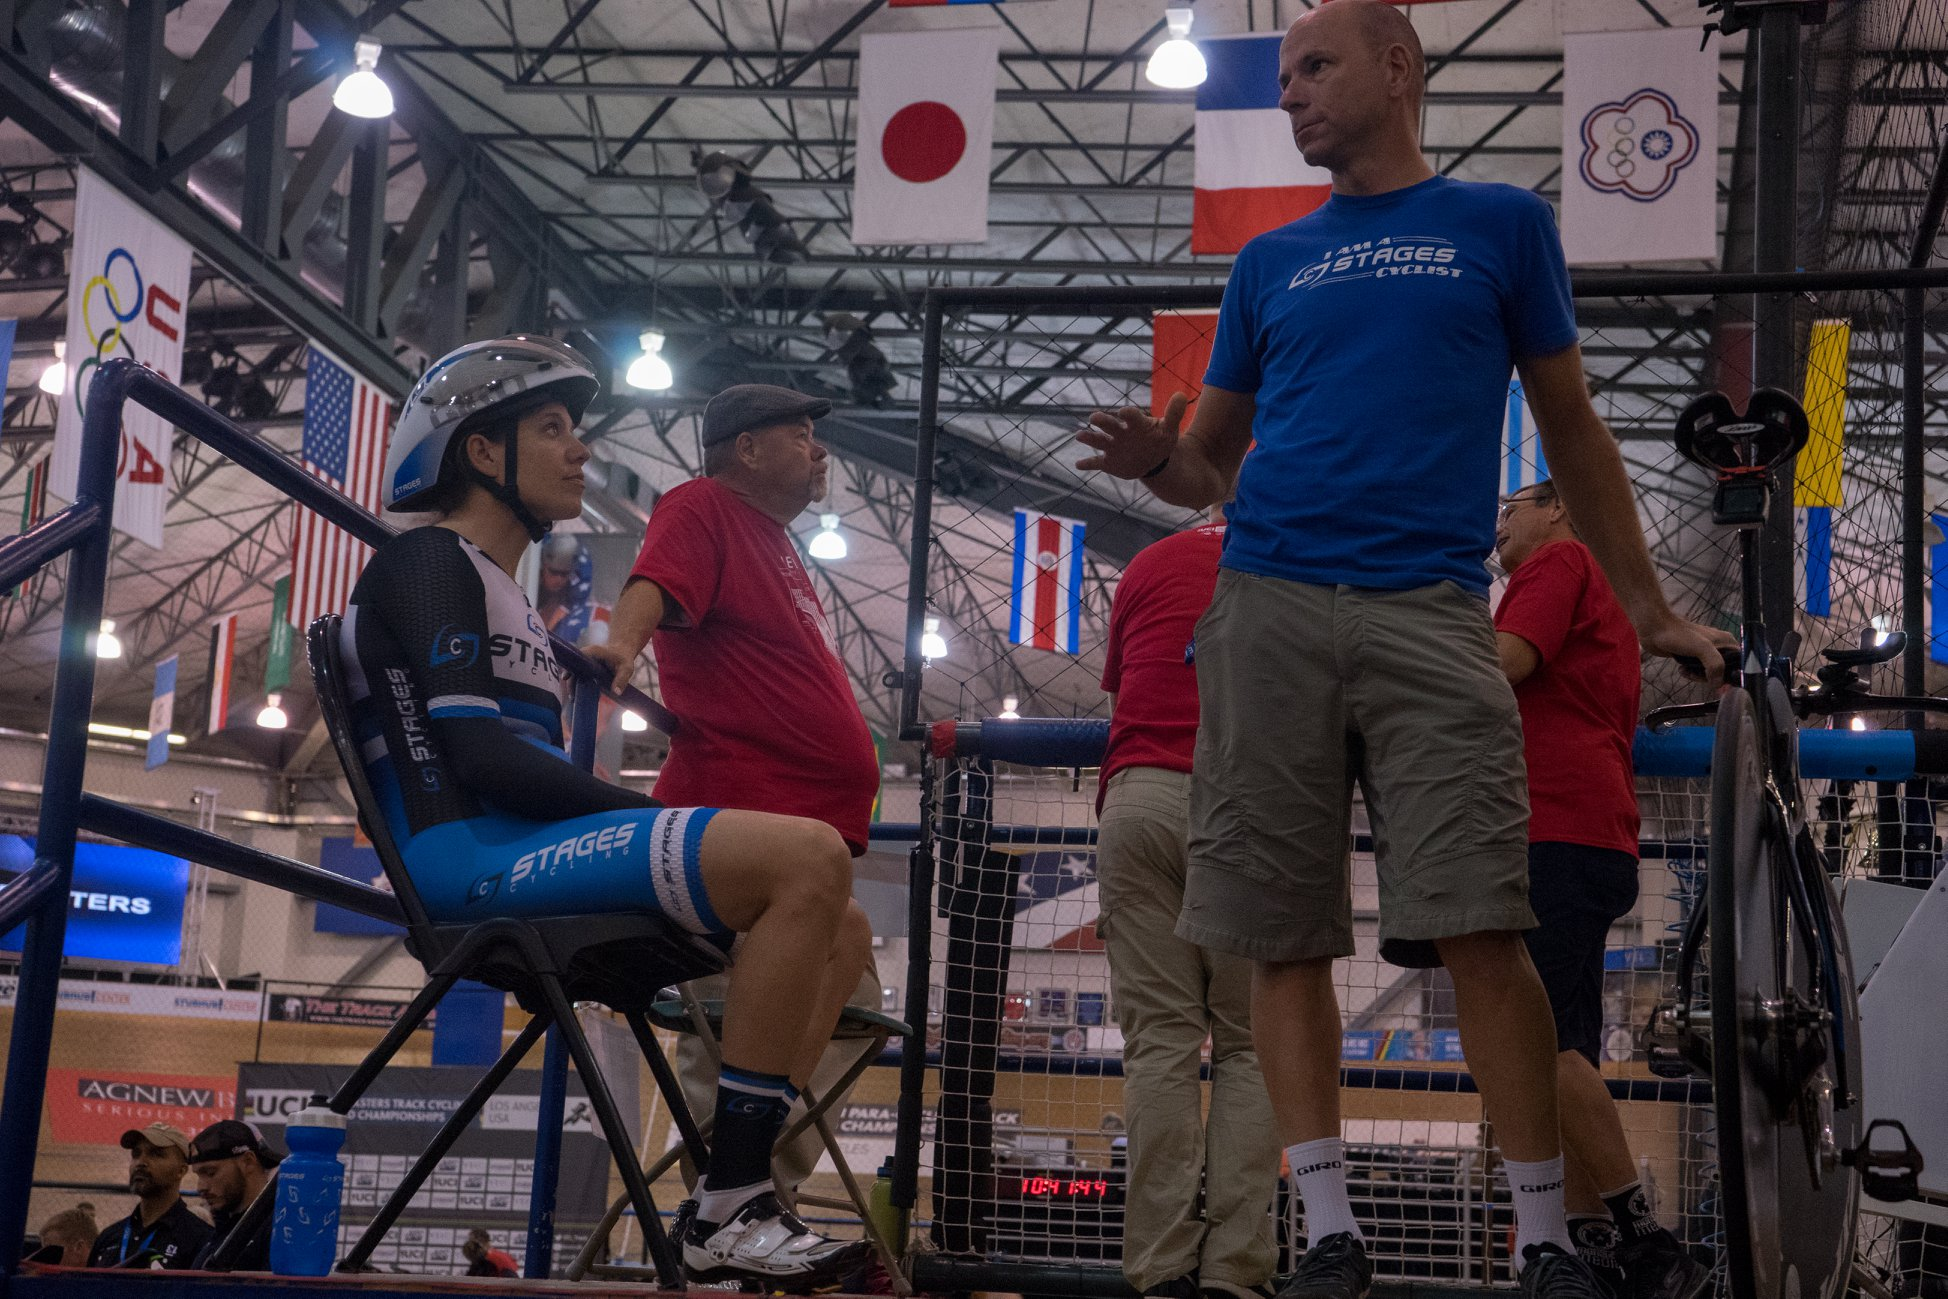 Ben and I moments before the start at the 2018 Master Track World Championships. Photo credit: Daniel Tomko